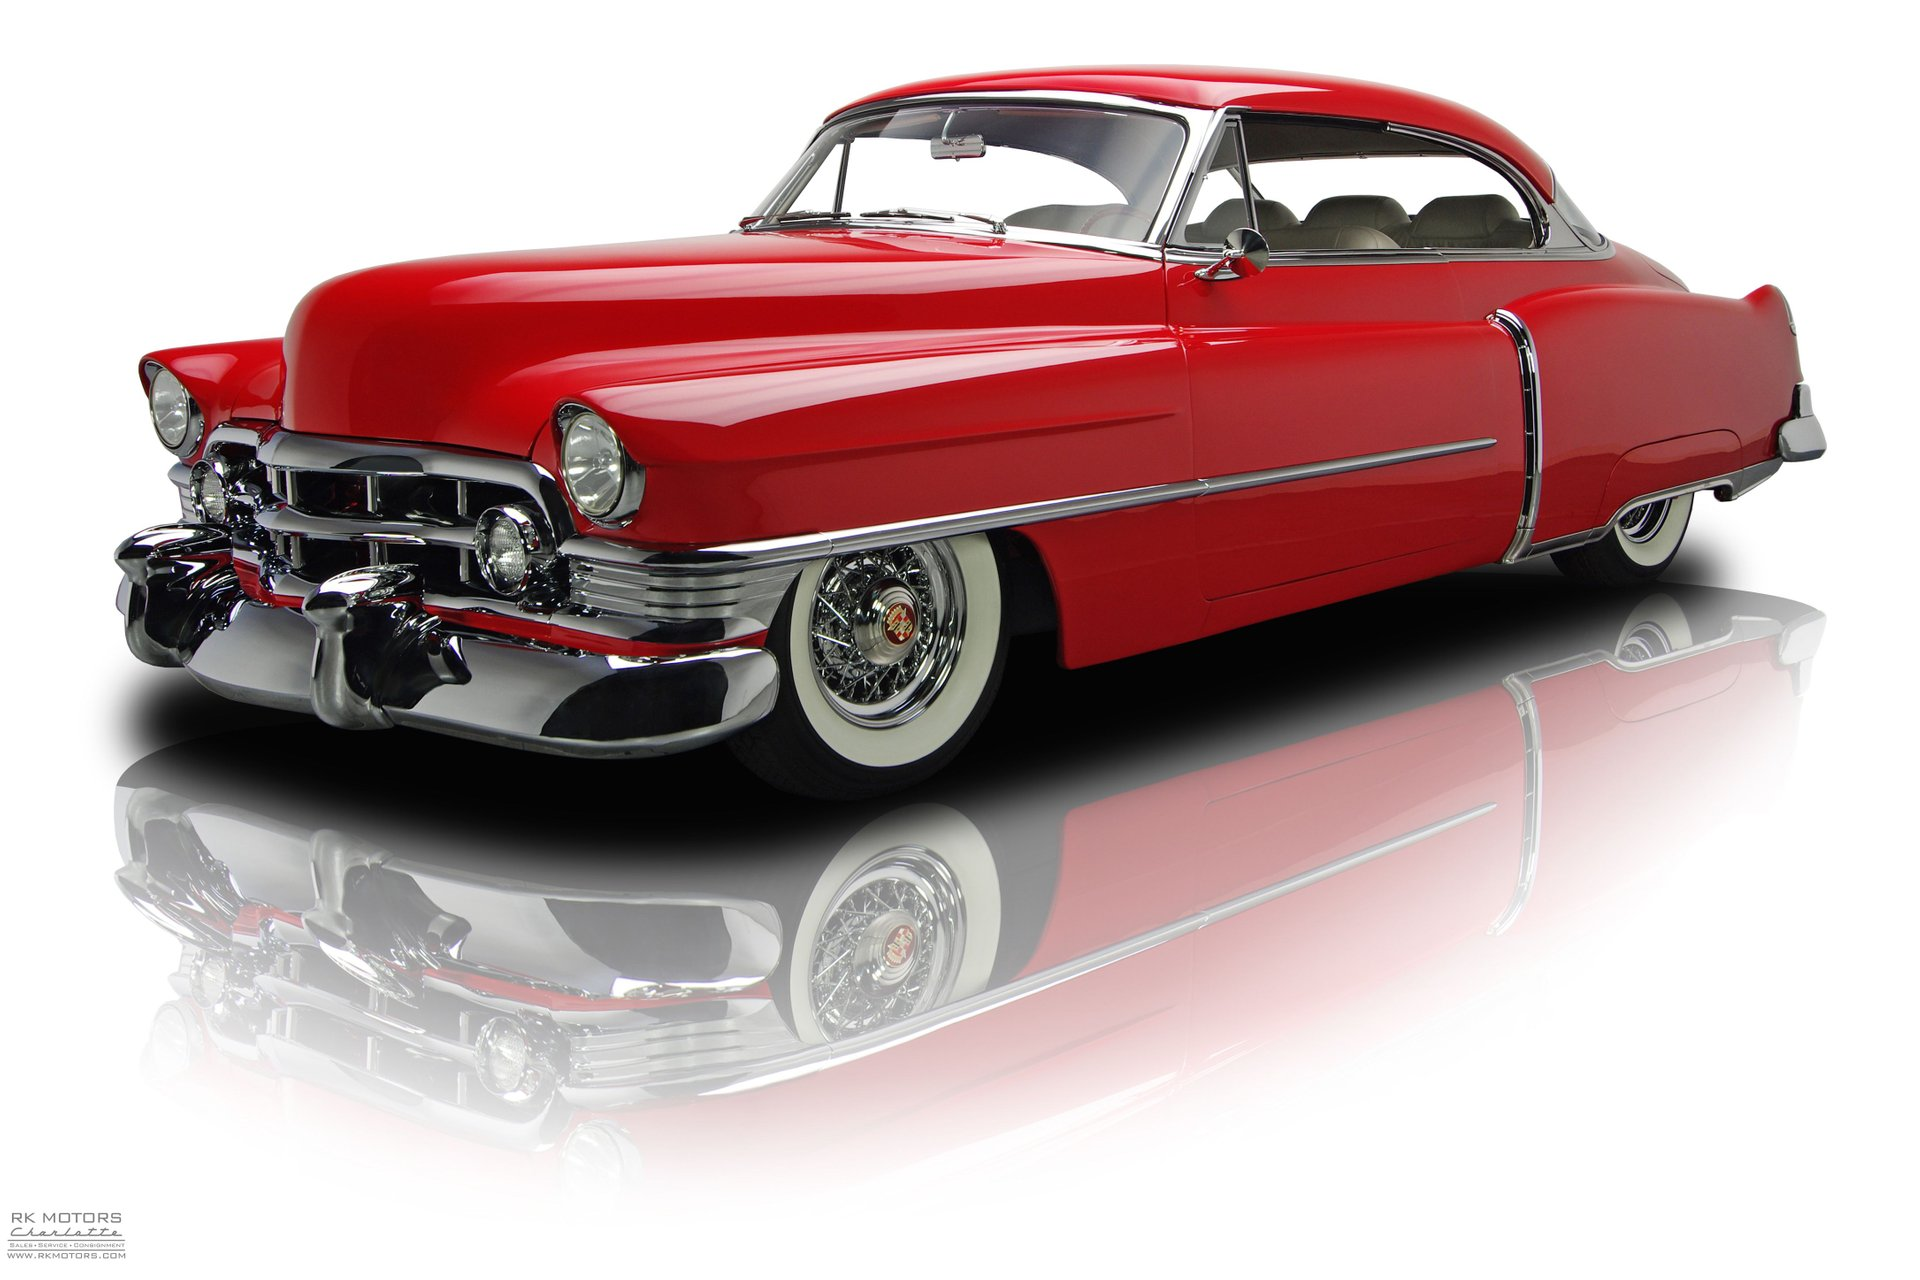 133087 1950 Cadillac Series 61 Rk Motors Classic Cars For Sale